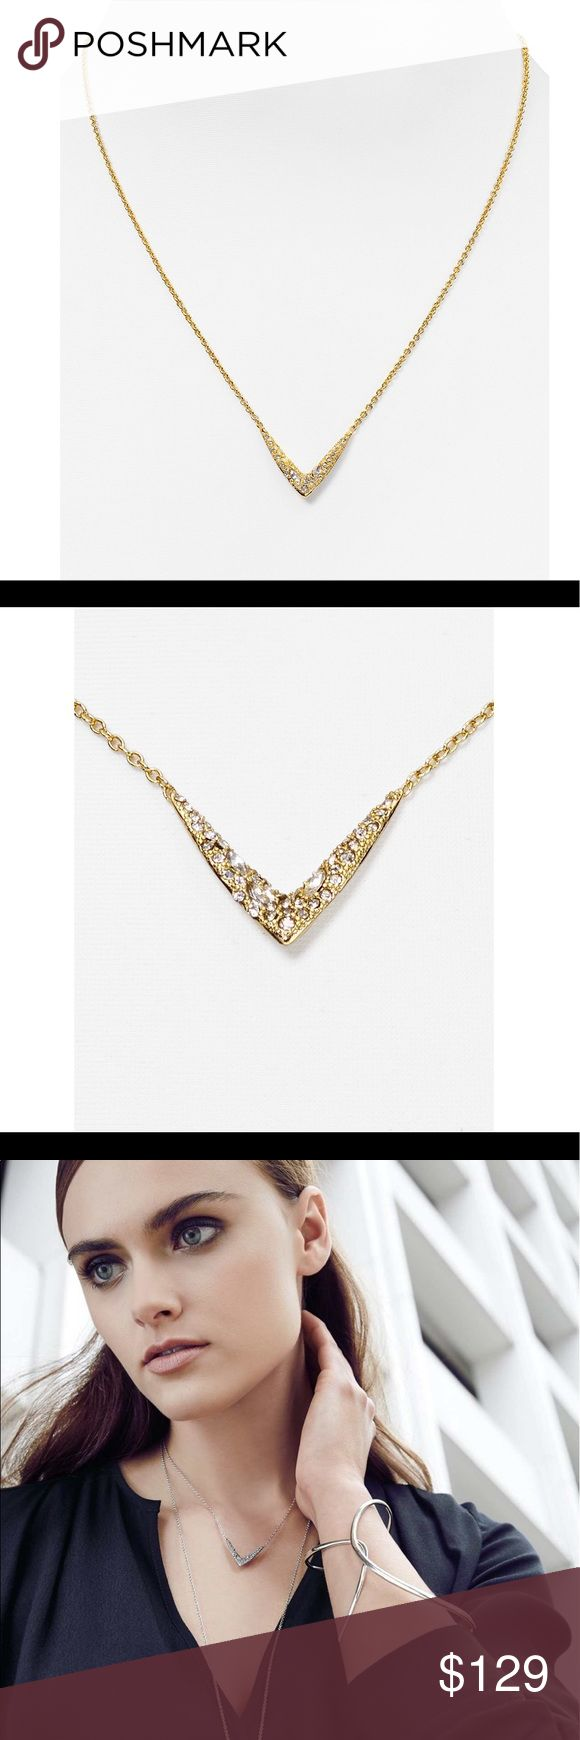 """Alexis Bittar Miss Havisham necklace Glittering round and marquise-cut crystals lend chic shine to a V-shaped pendant necklace that adds modern, angular interest to your look. 15 1/2"""" length; 3"""" extender; 3/4"""" drop. Lobster clasp closure. 10K gold plate/glass/Swarovski crystal. Alexis Bittar Jewelry Necklaces"""